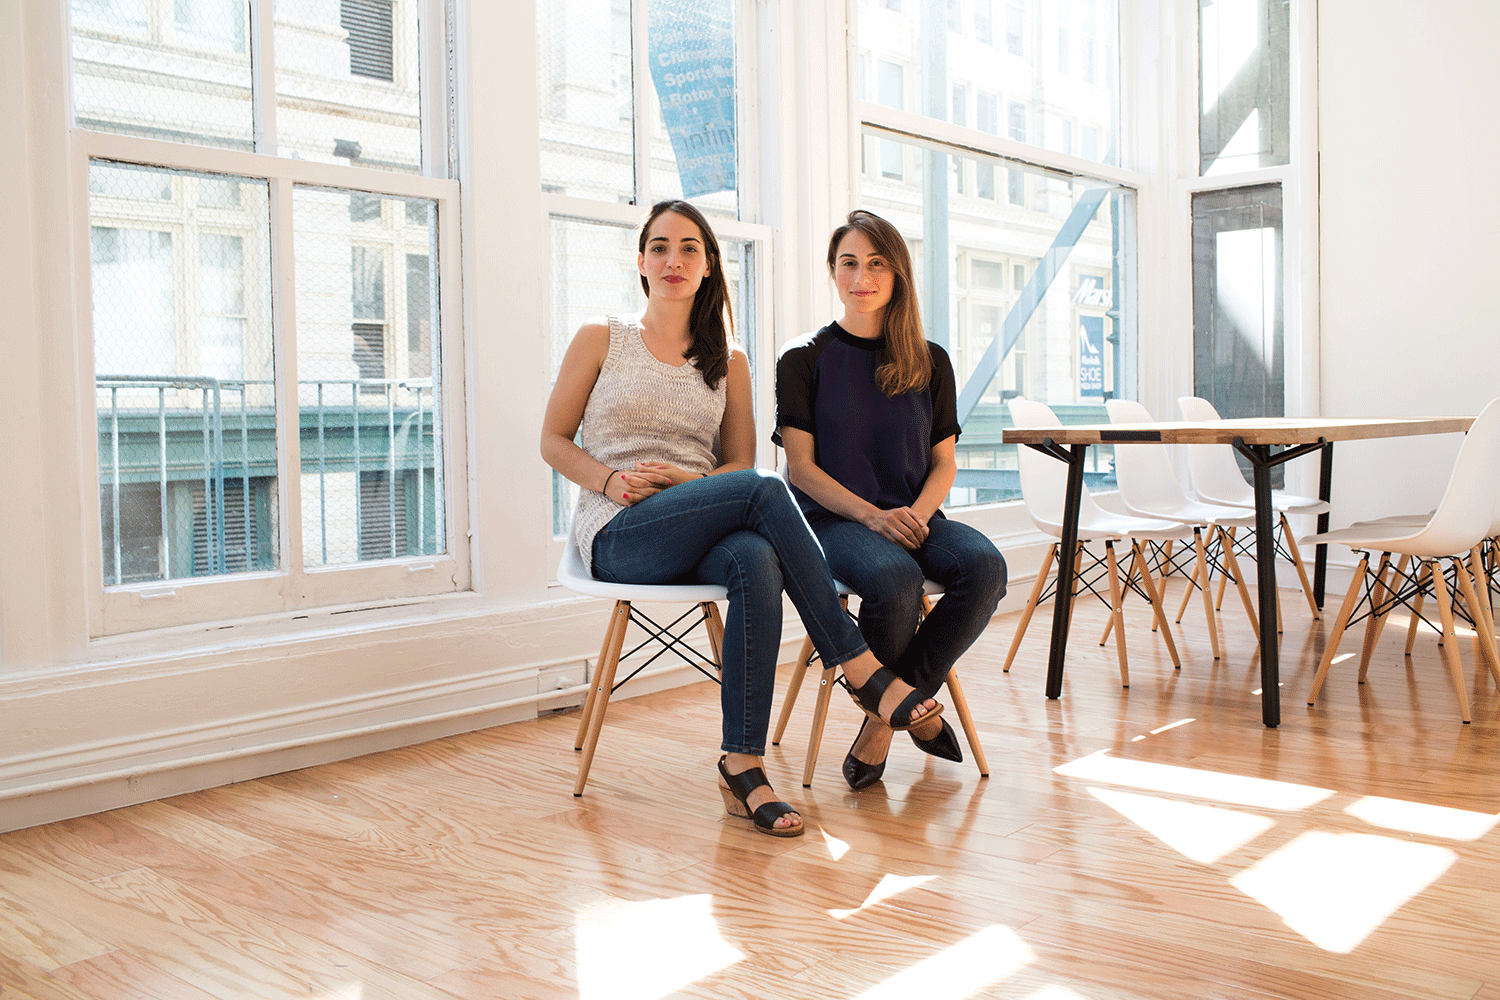 Hello Alfred co-founders Marcela Sapone and Jessica Beck   All images courtesy of Hello Alfred